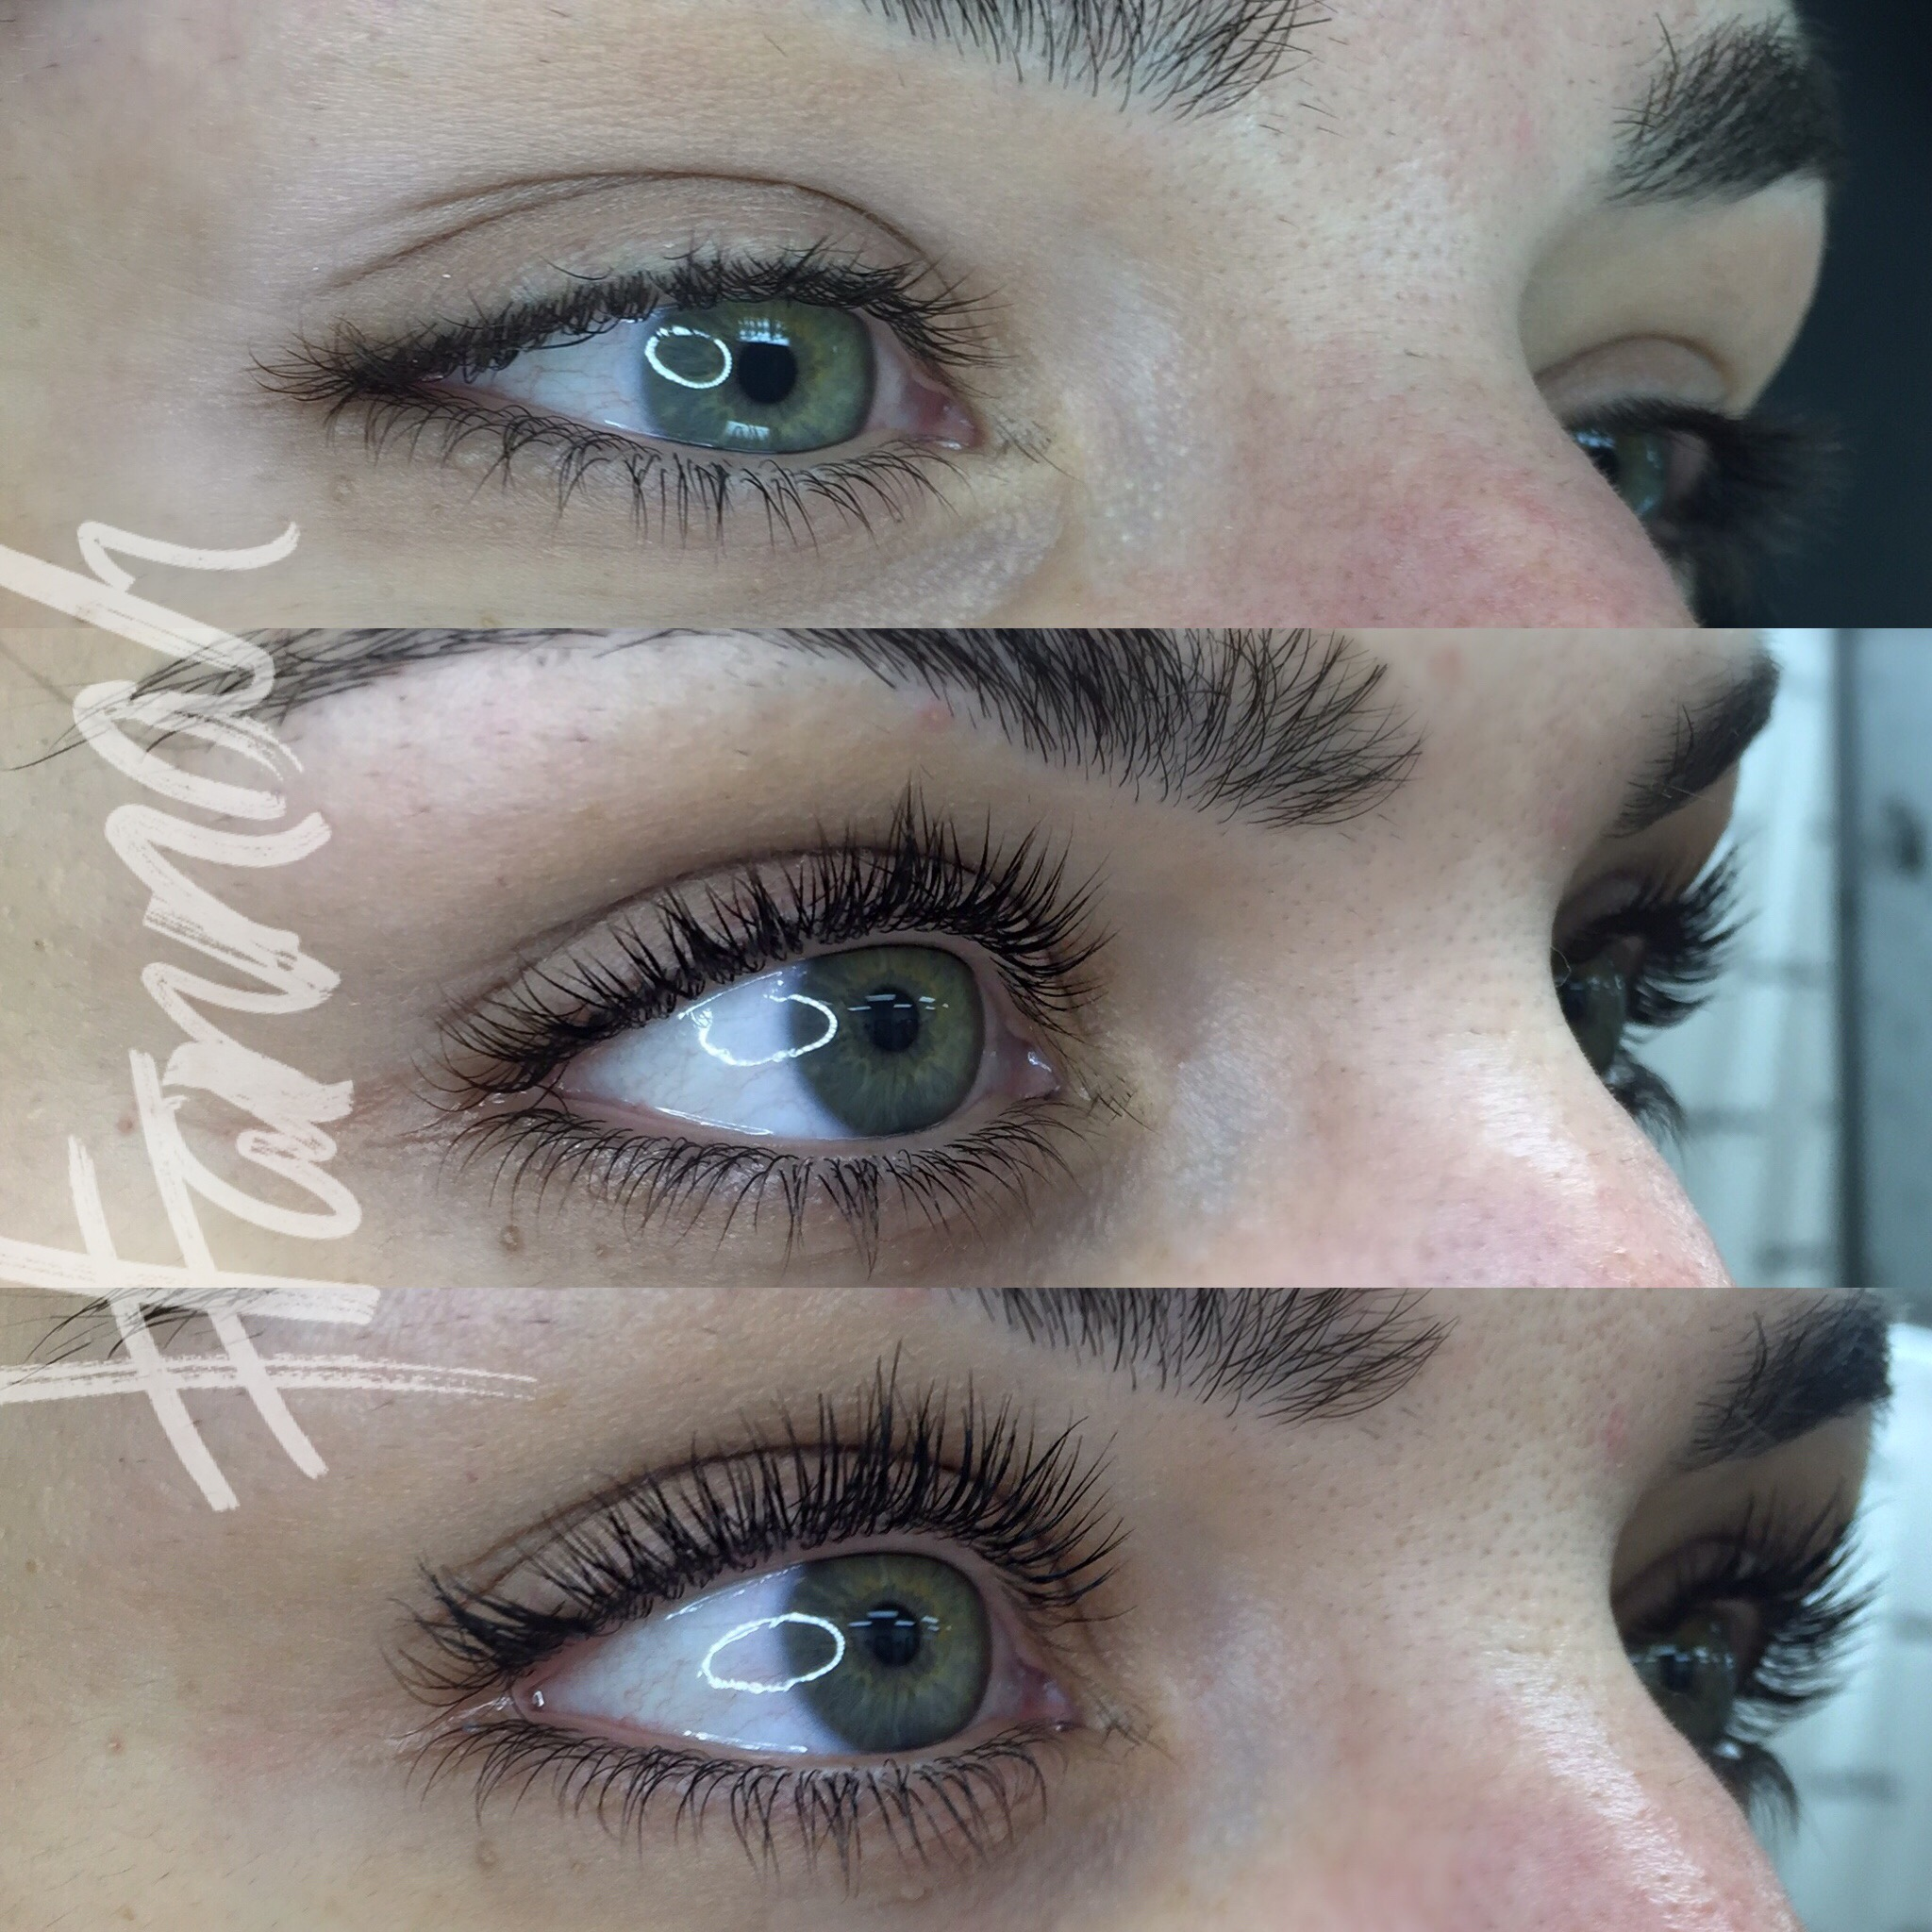 Before, After Lift, After Lift + SPM (top lashes only)